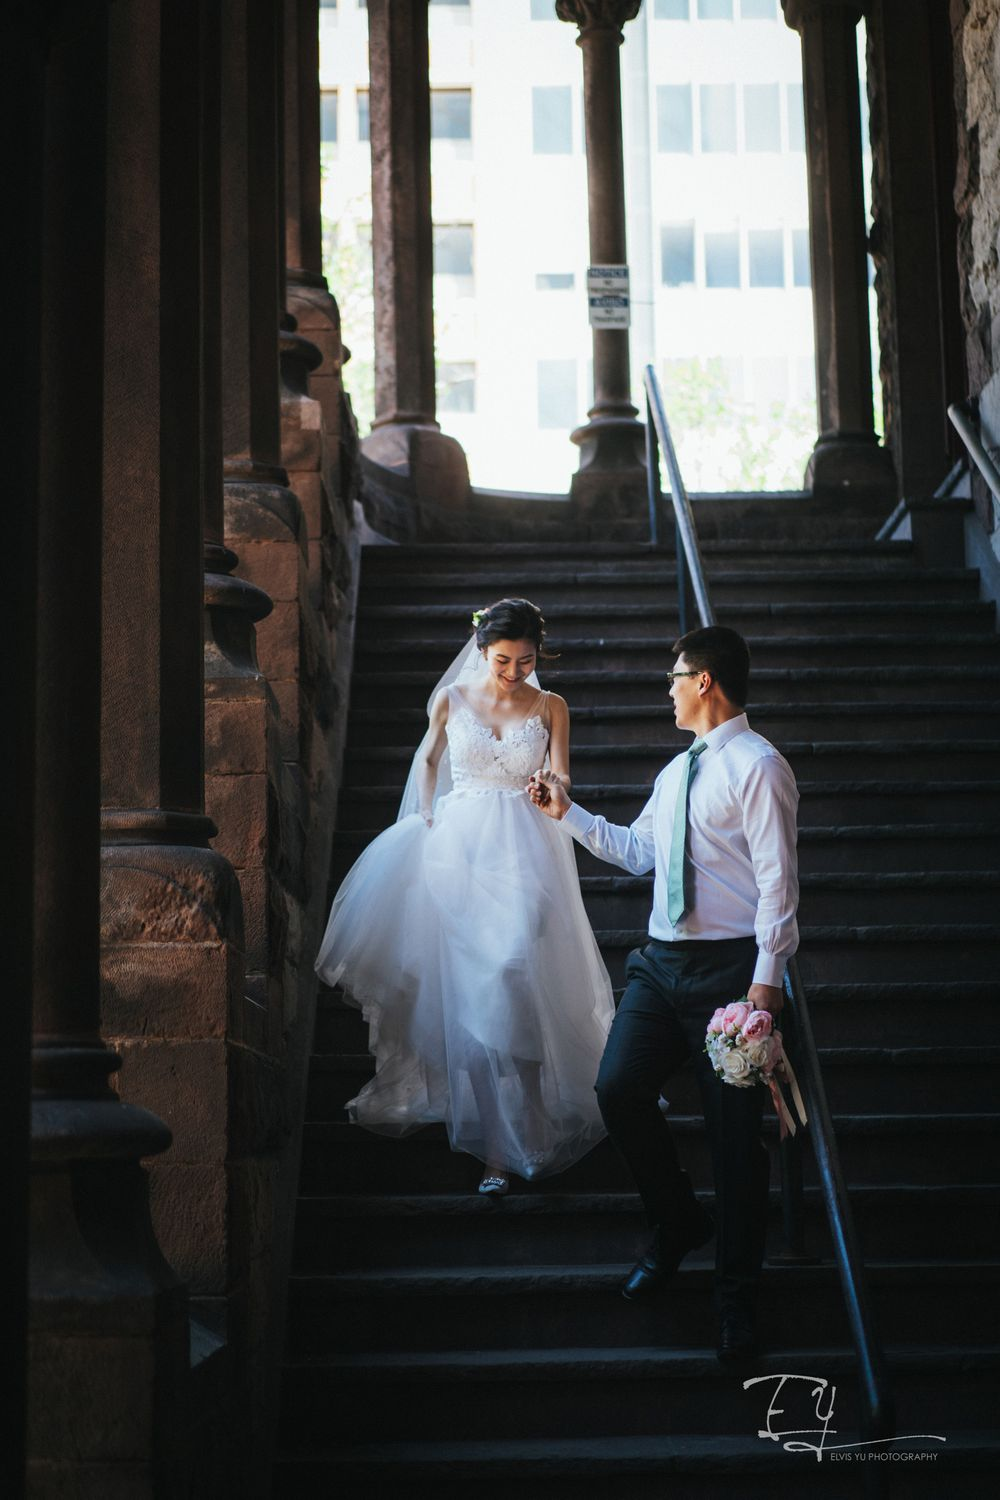 elvis yu photography california engagement wedding day destination wedding boston